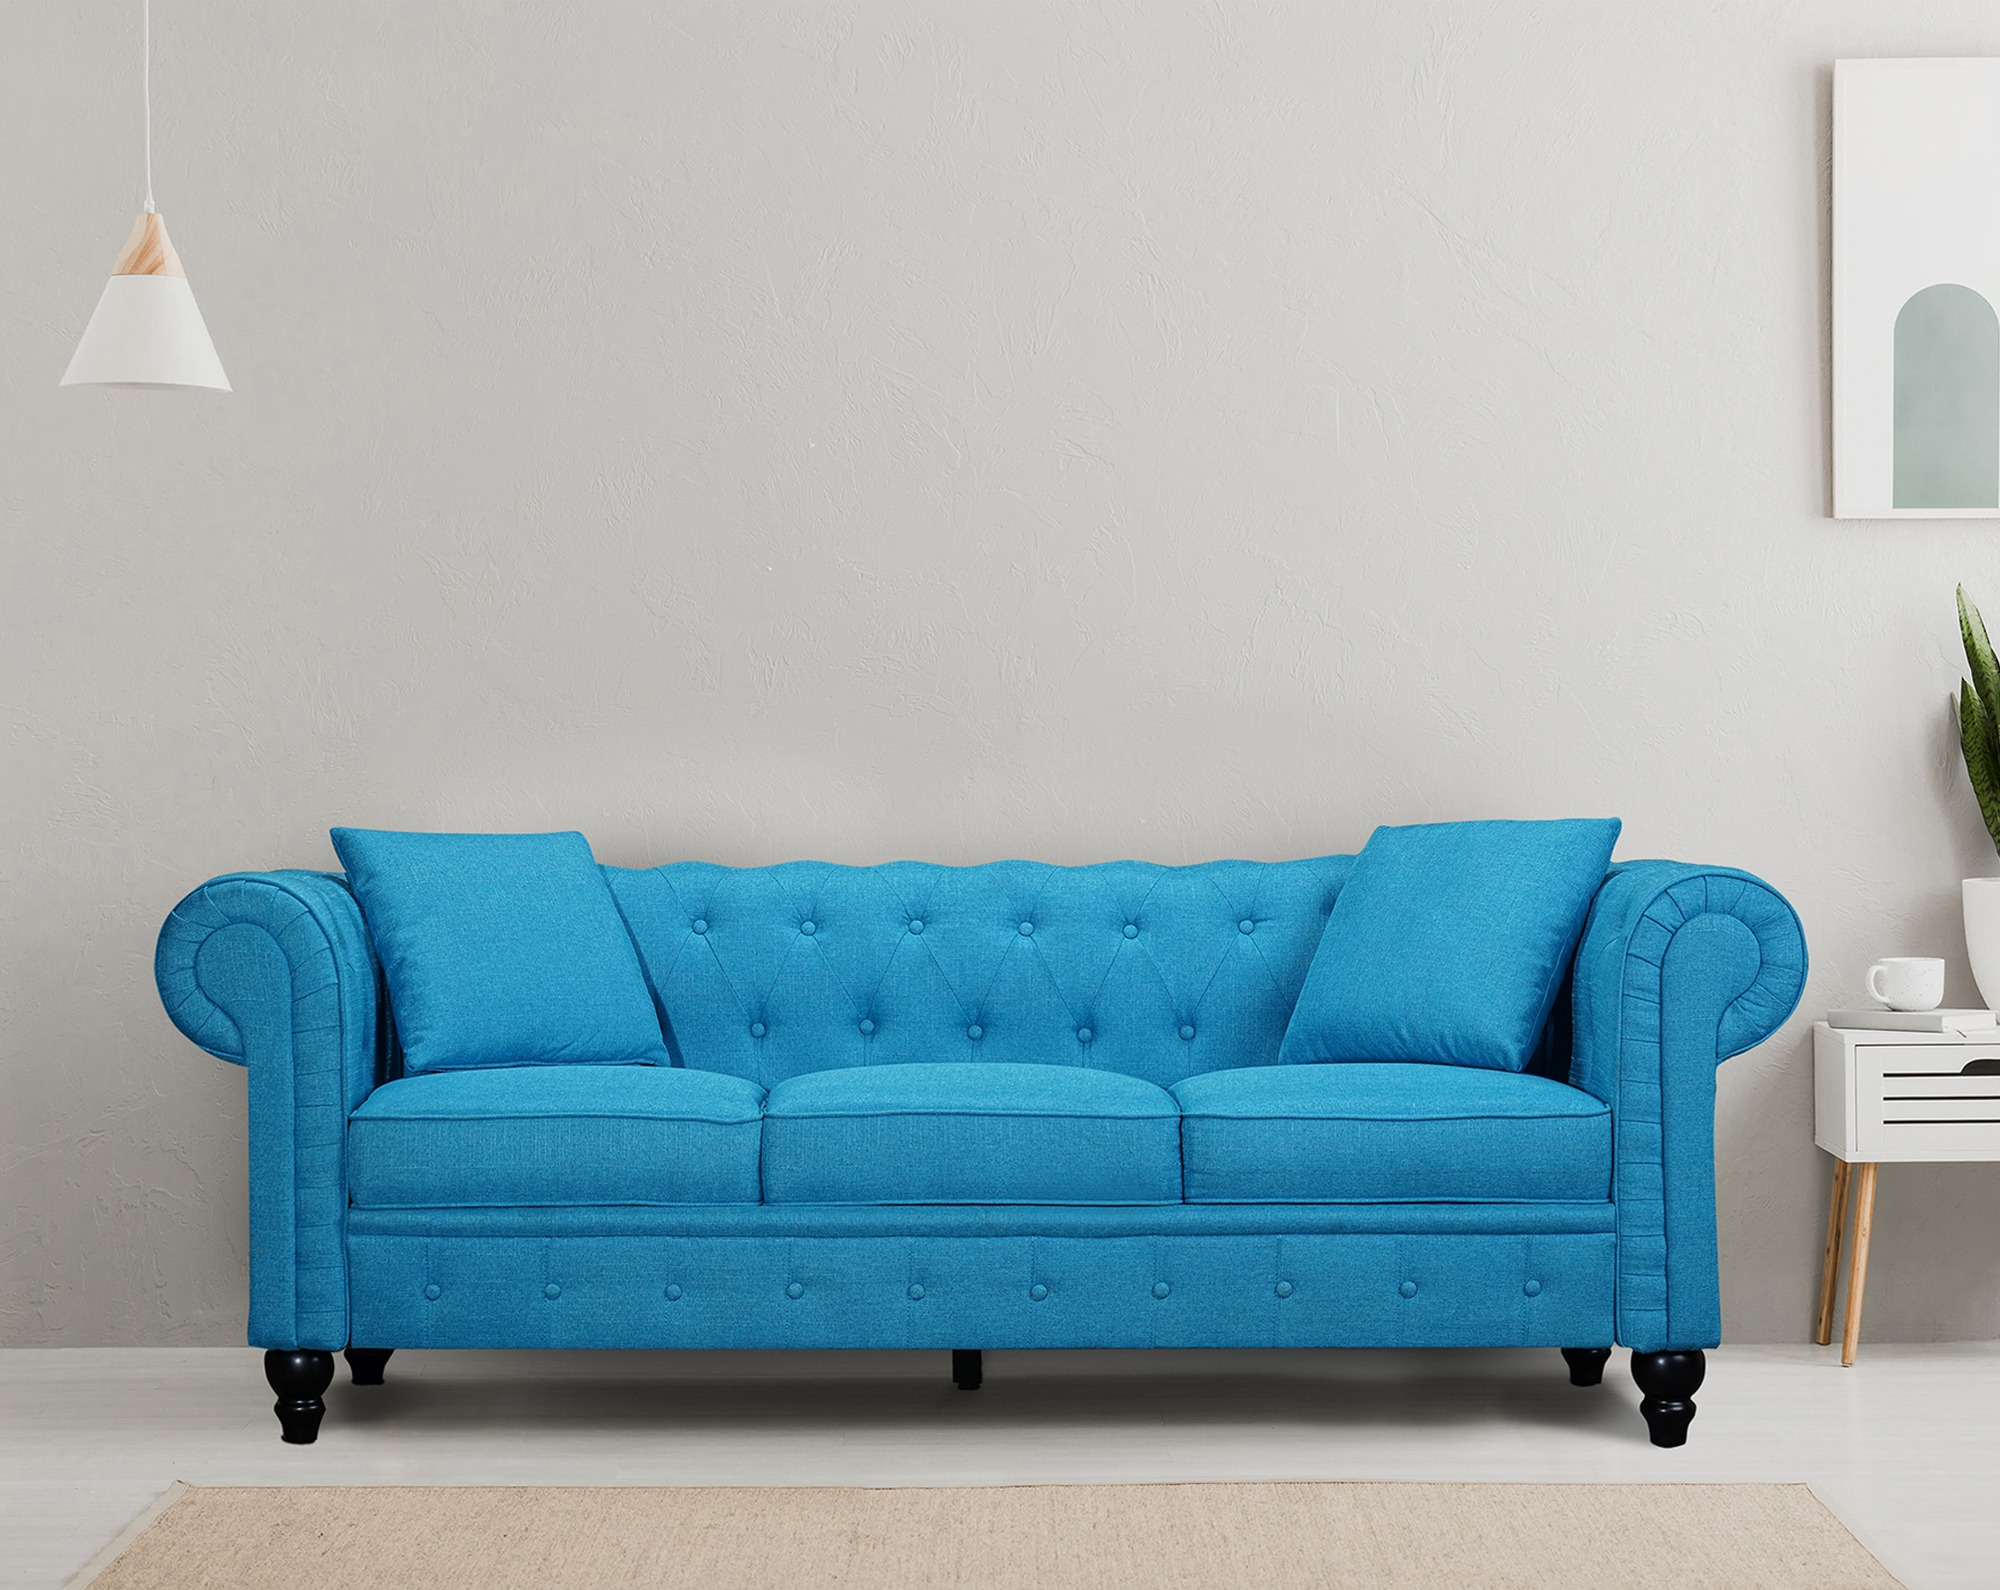 Valencia Sofas Abruzzo Tufted Chesterfield Sofa With 2 Decorative Pillows Aqua Blue Walmart Canada